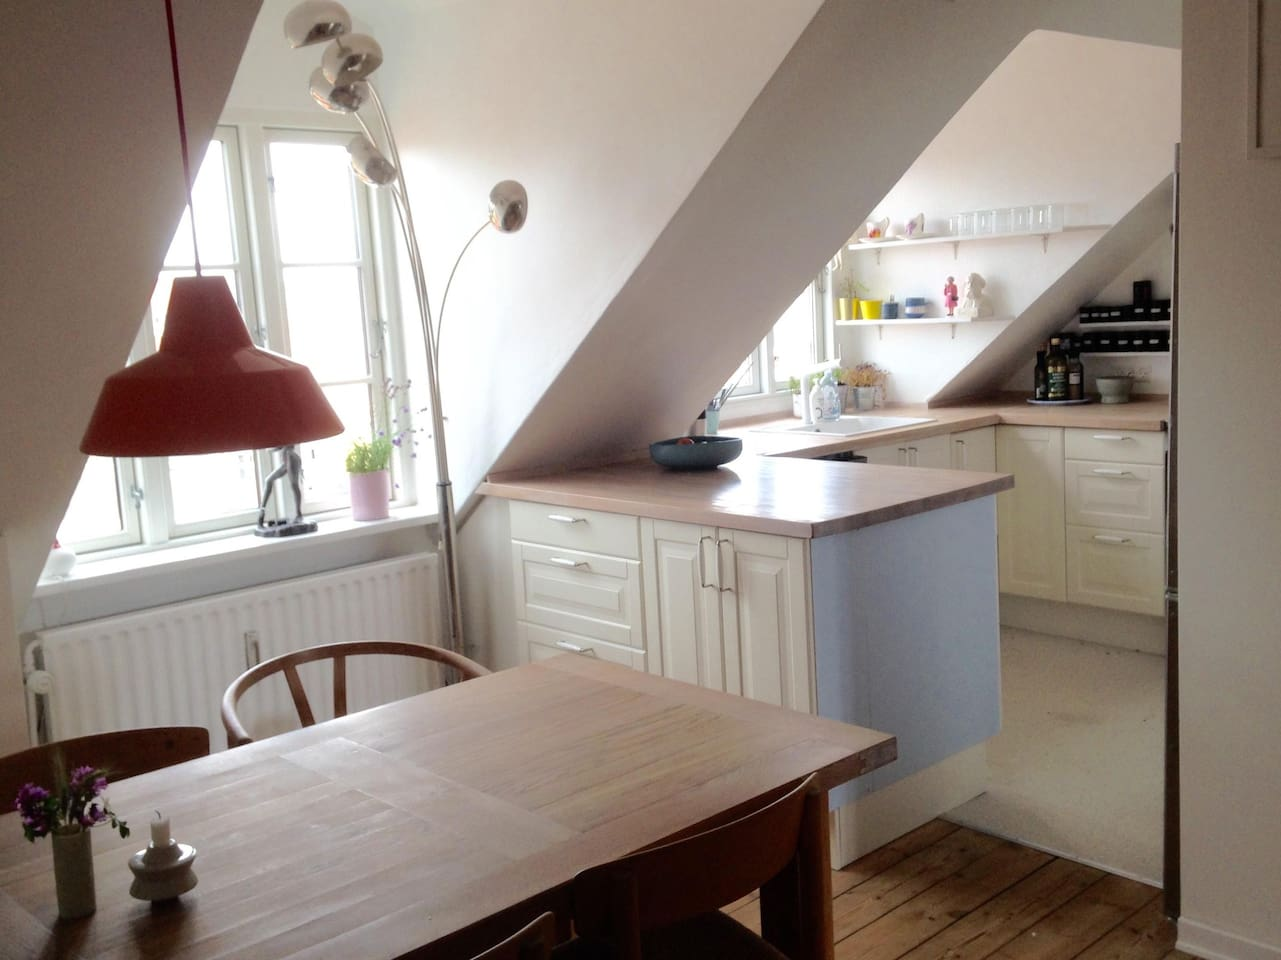 Penthouse flat in the heart of Frederiksbjerg